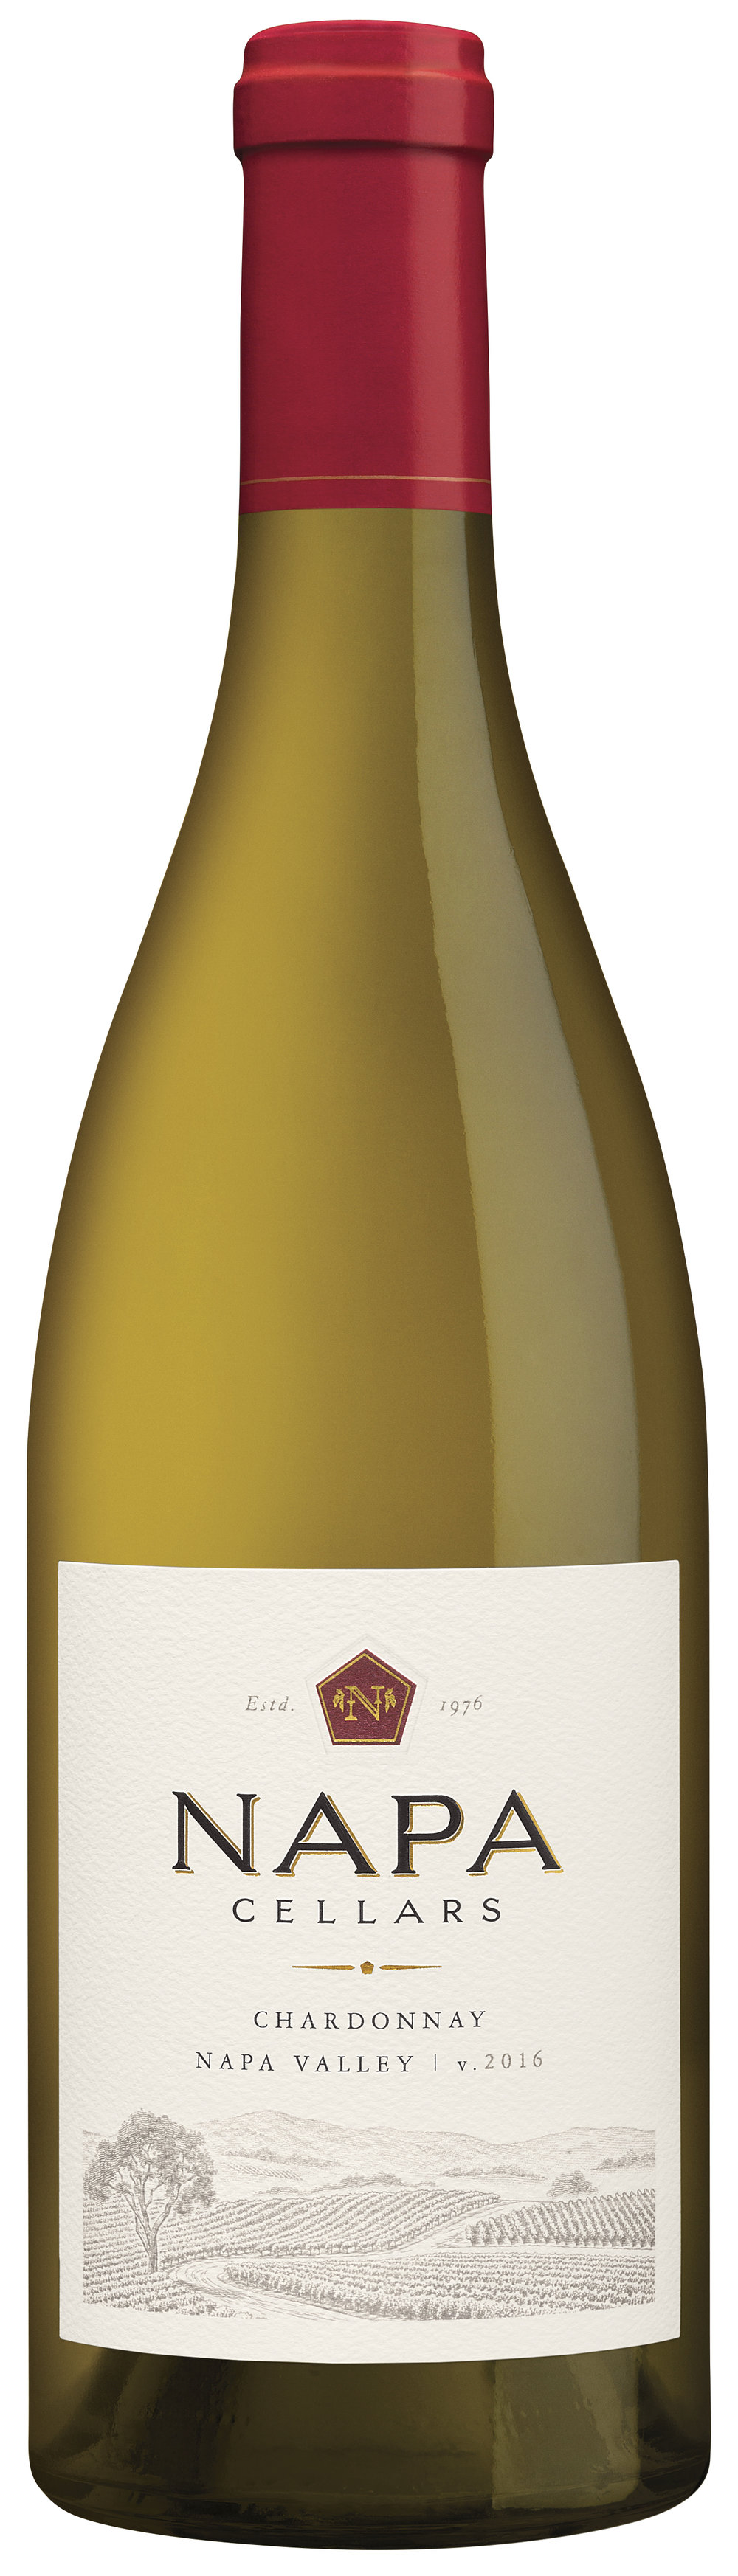 Napa Cellars 2016 Chardonnay HR New Package Bottle Shot.jpg